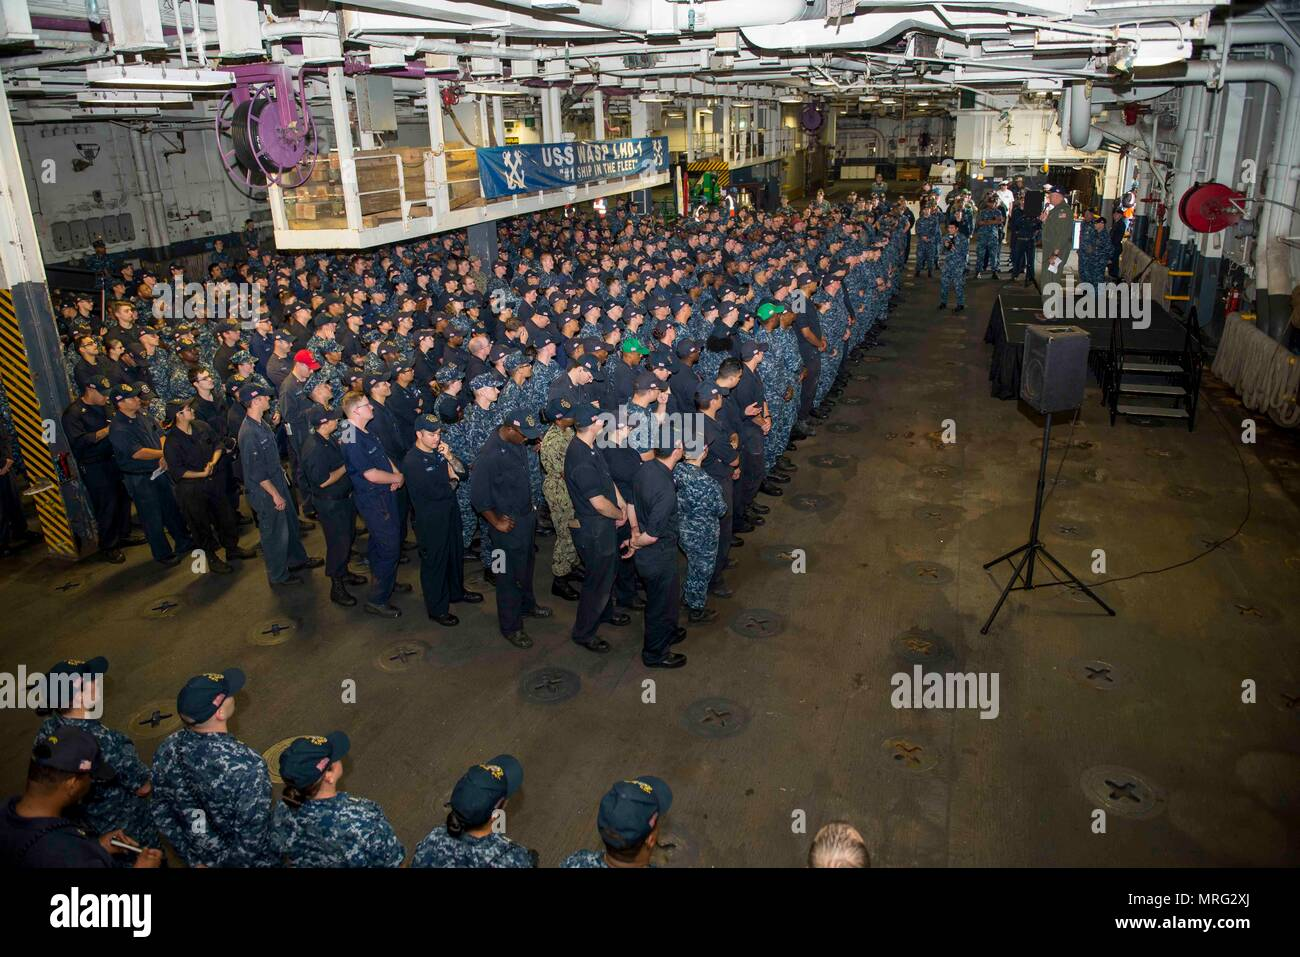 Molina Stock Photos Images Page 21 Alamy Andrew Smith Navy Formal Trousers 38 170613 N Vk310 011 Norfolk June 13 2017 Capt